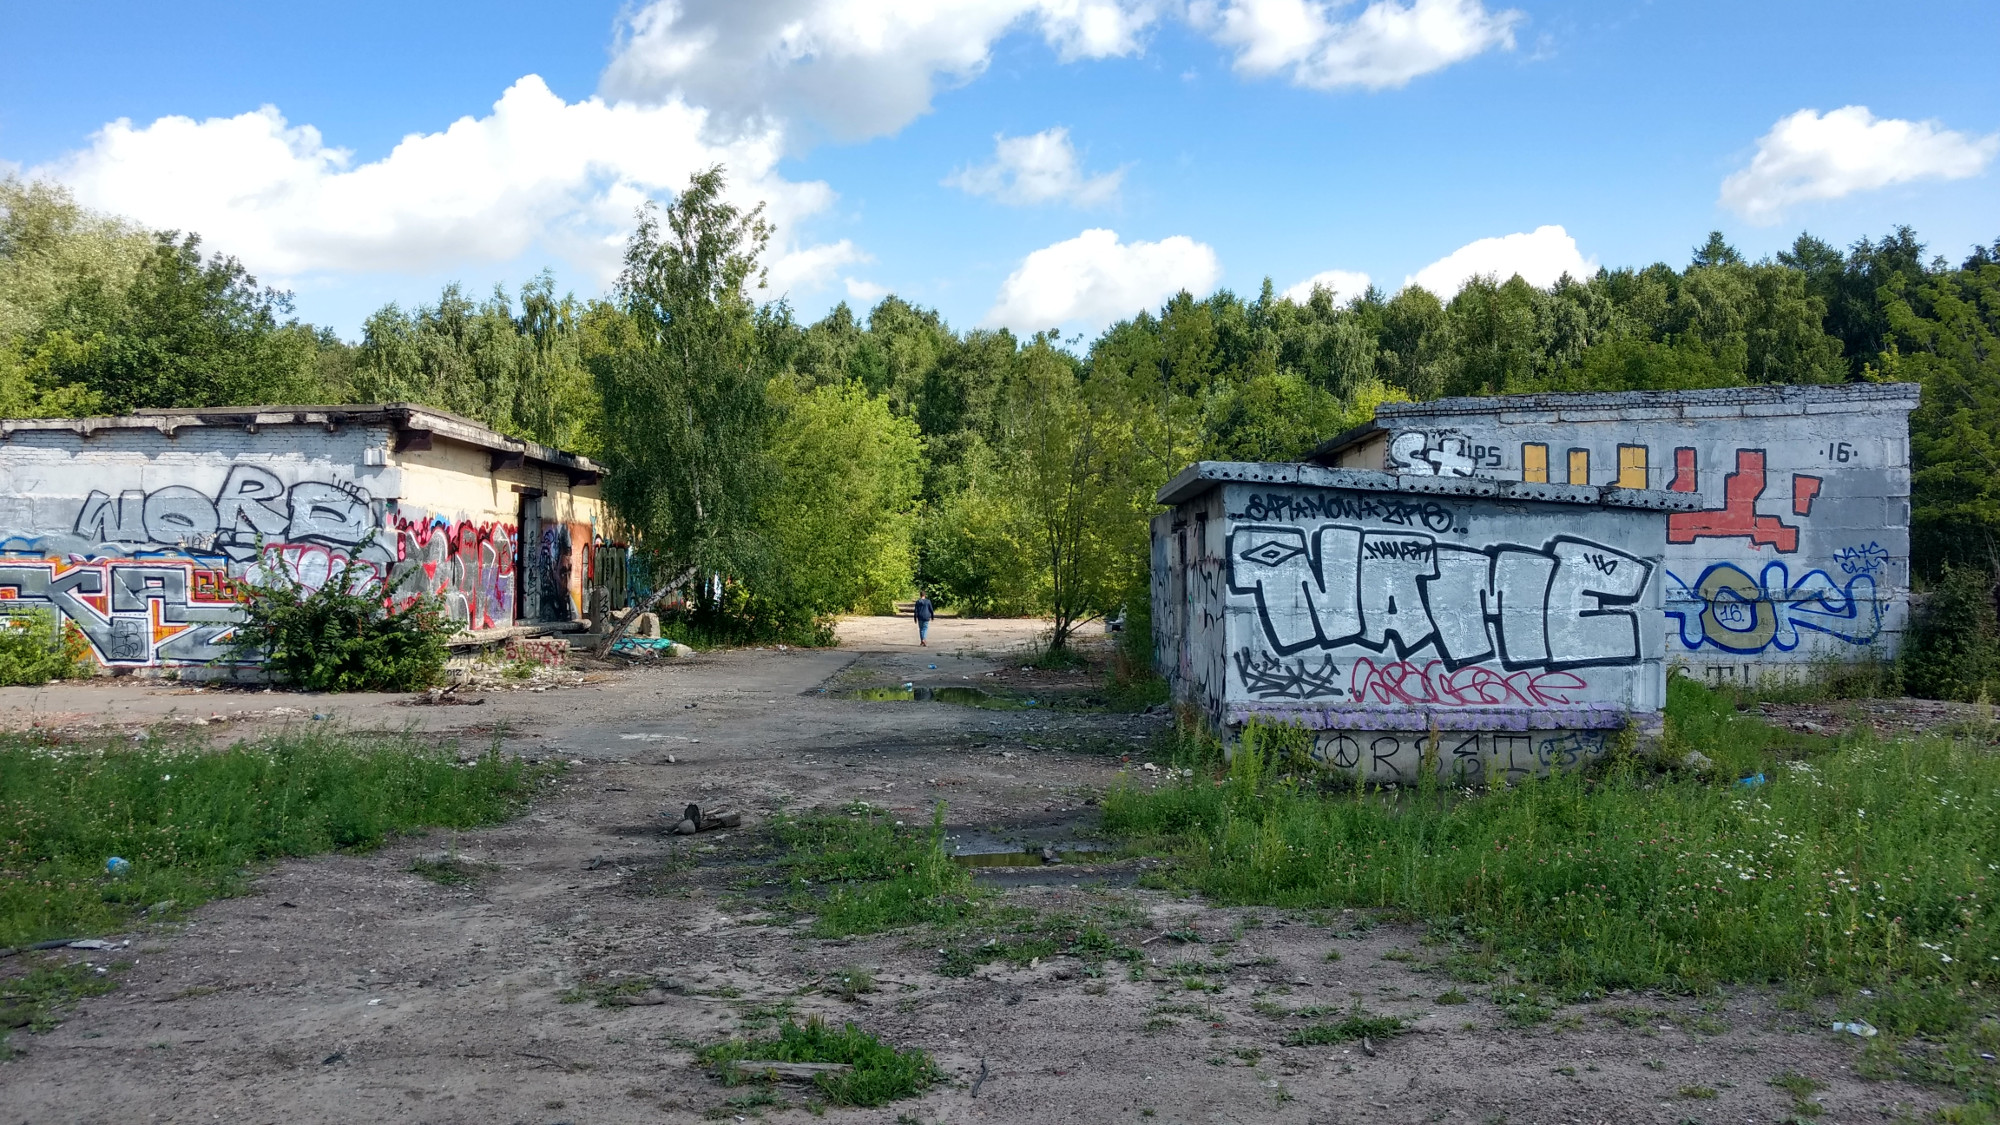 Outside the belokamennaya station in the elk island national park, some abandoned building with grafity